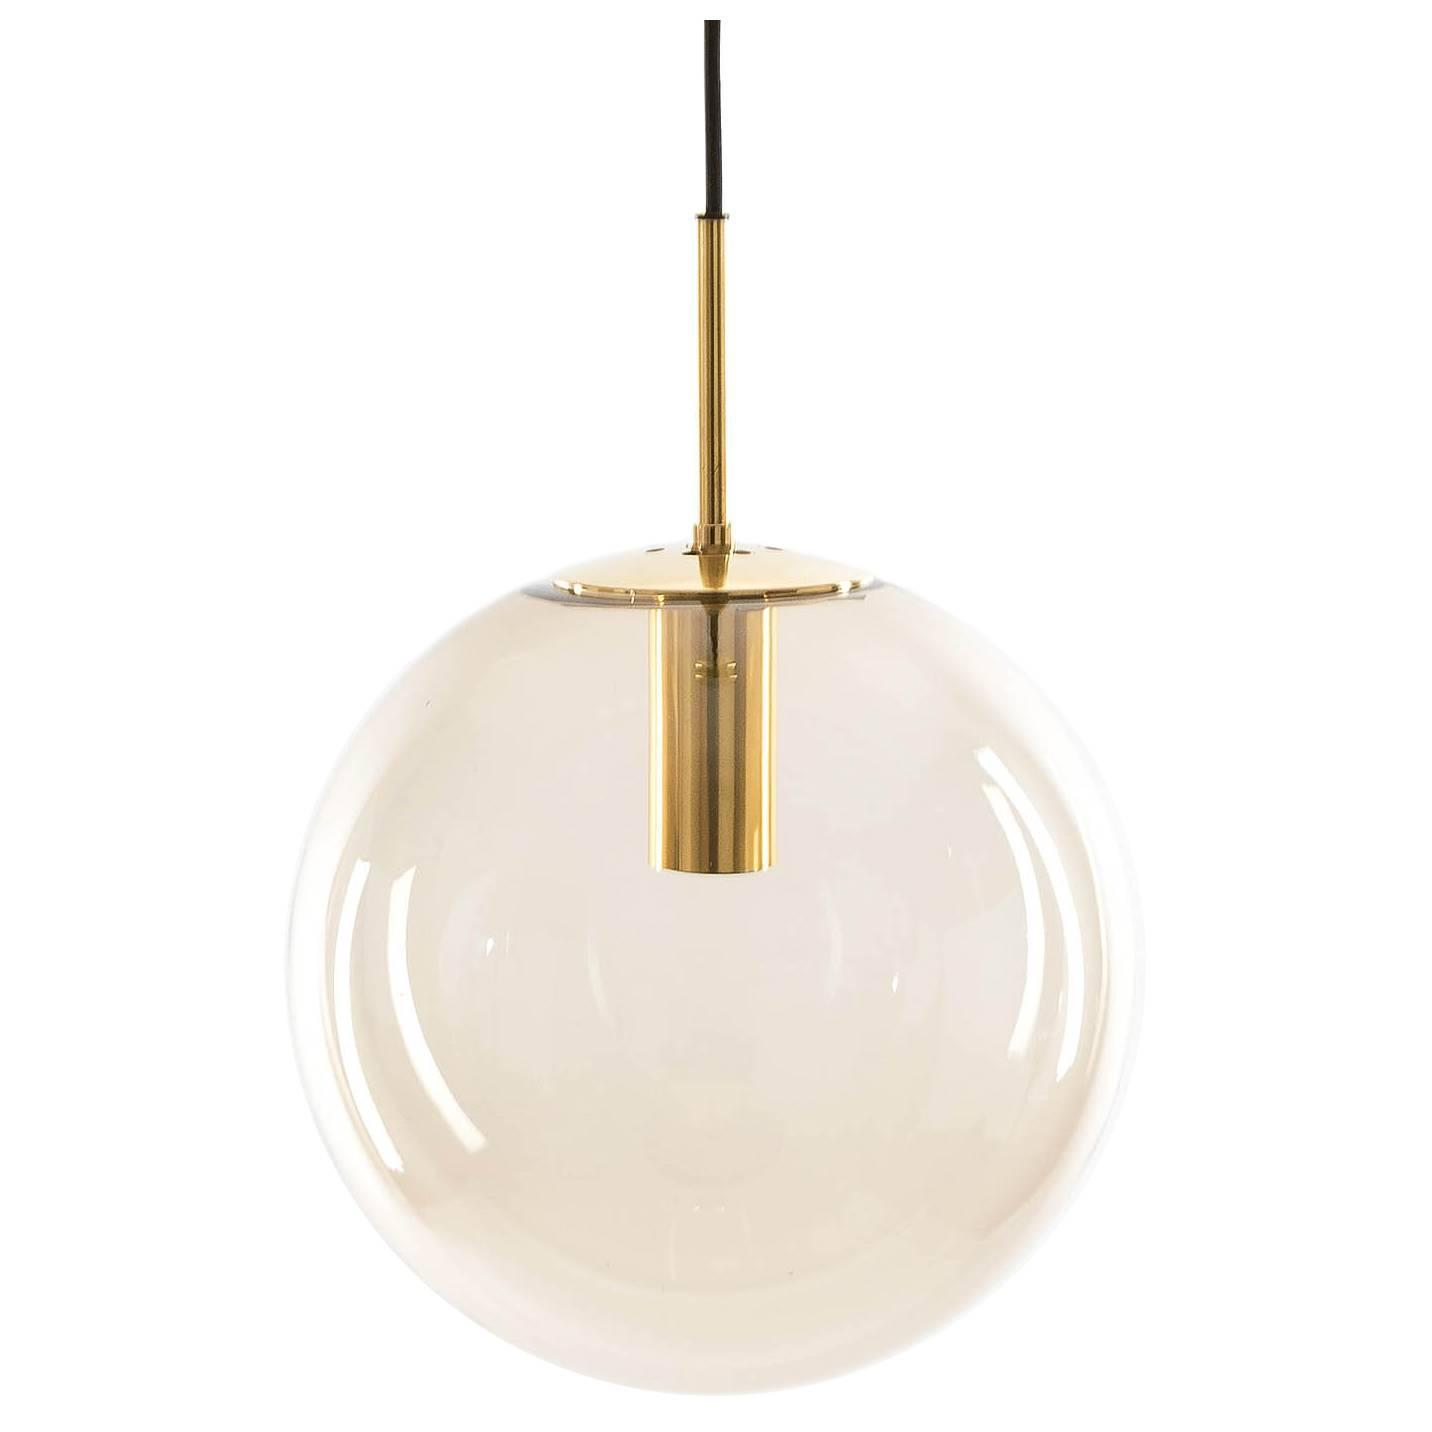 Limburg Pendant Lights Brass and Brown Glass Globes 1960s For